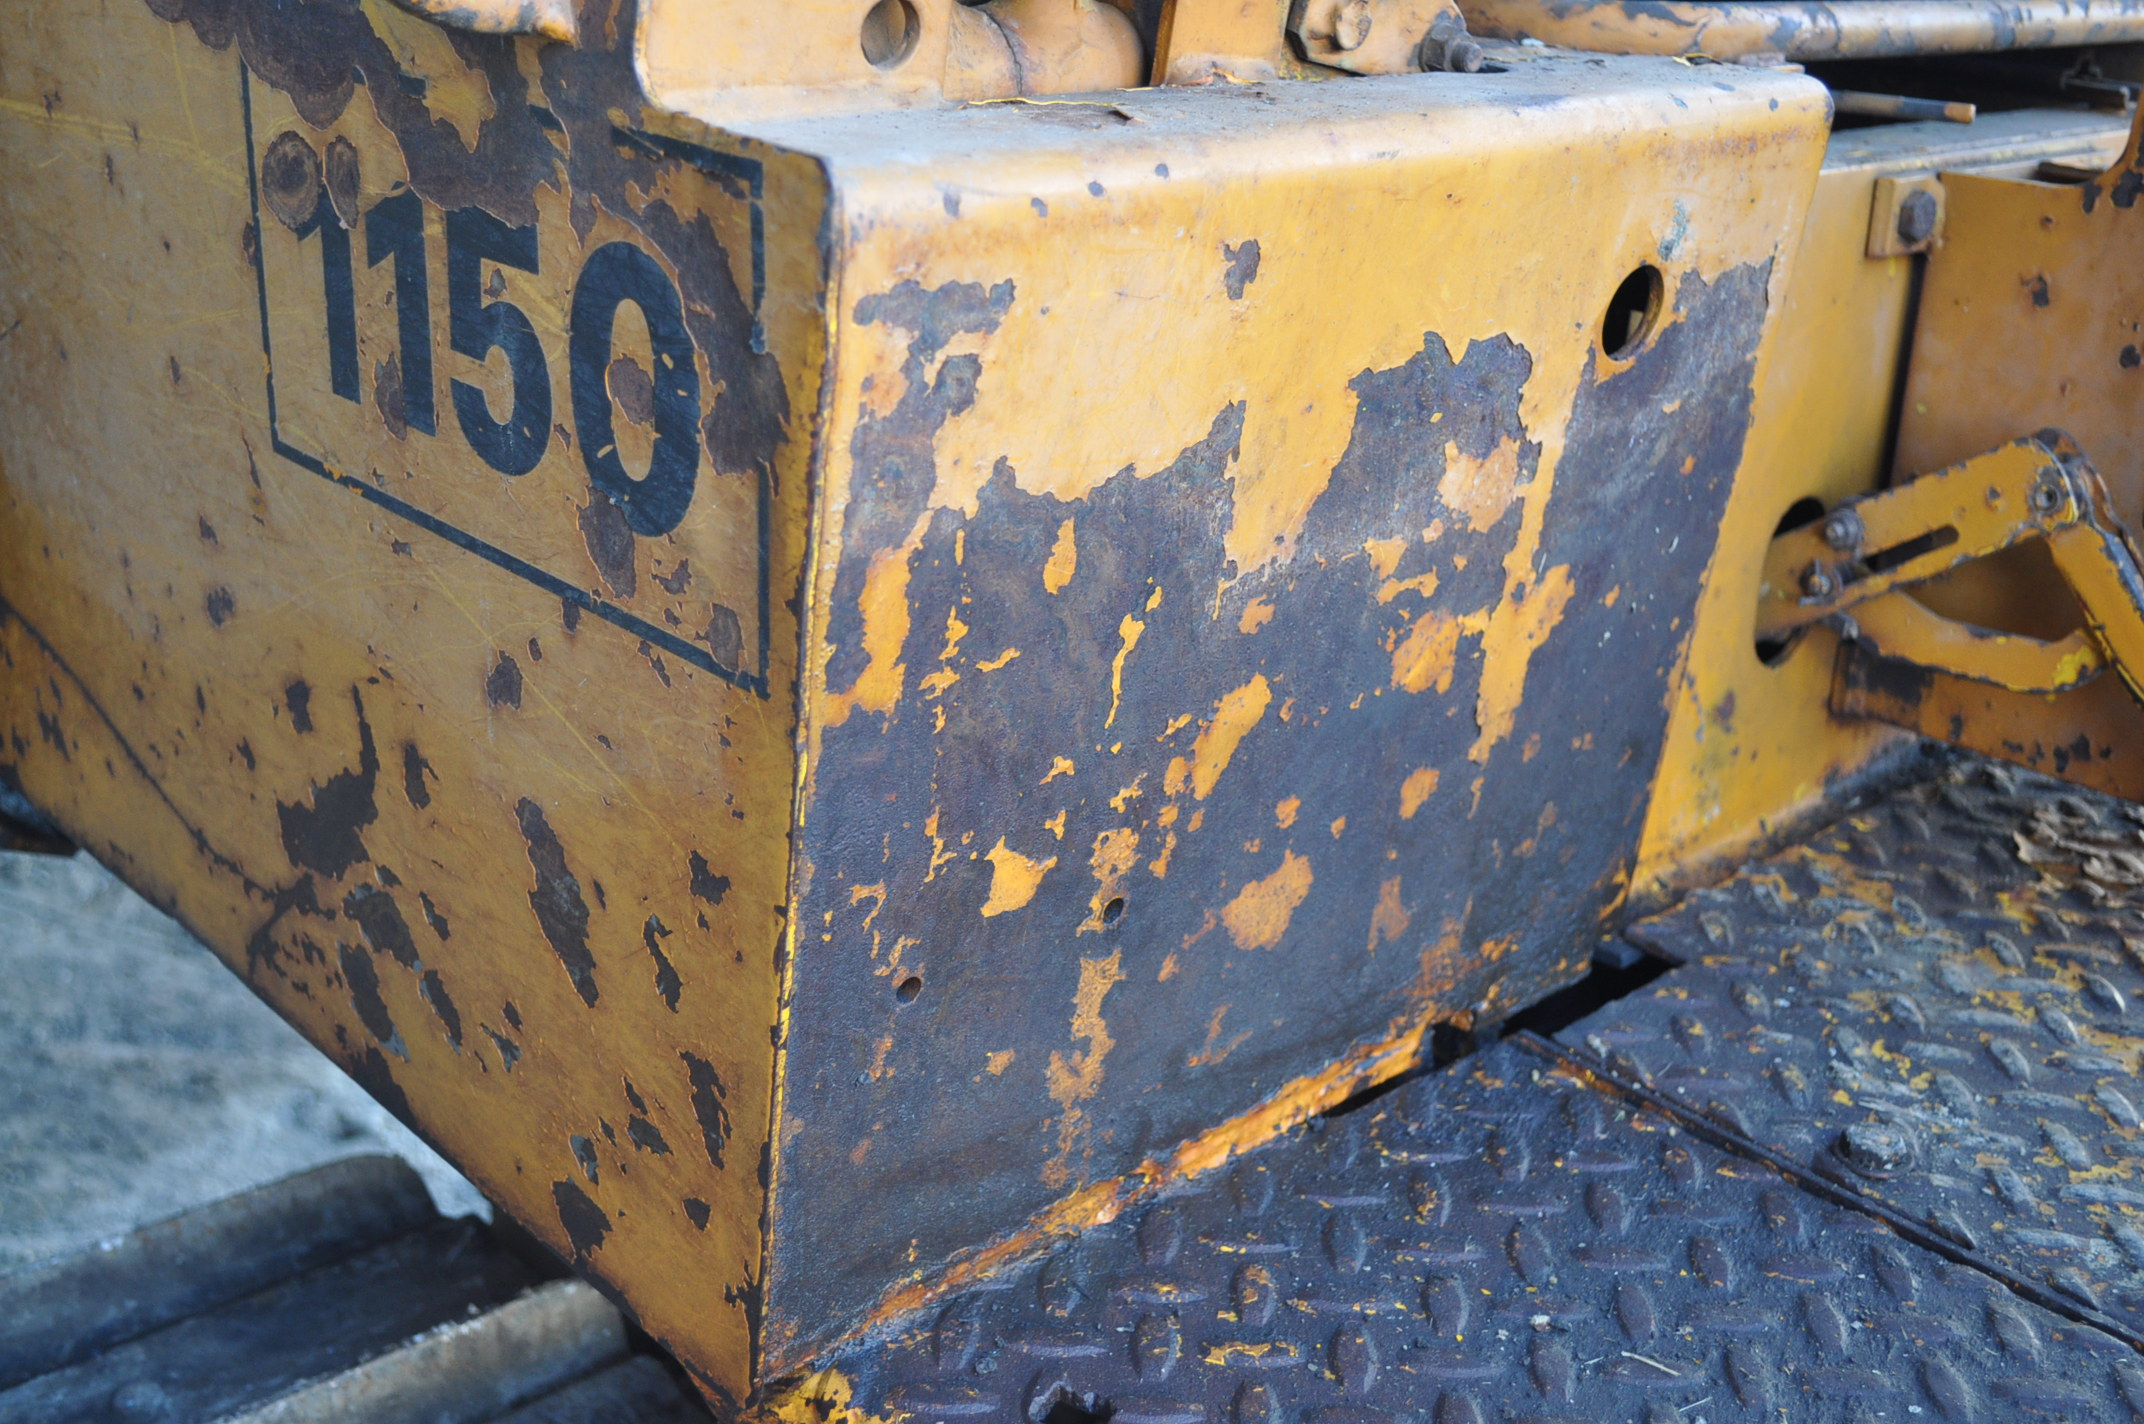 Case 1150 dozer, 8' 4 way blade, rear hitch, diesel, shows 1250 hrs, hrs unkown, SN missing - Image 11 of 11